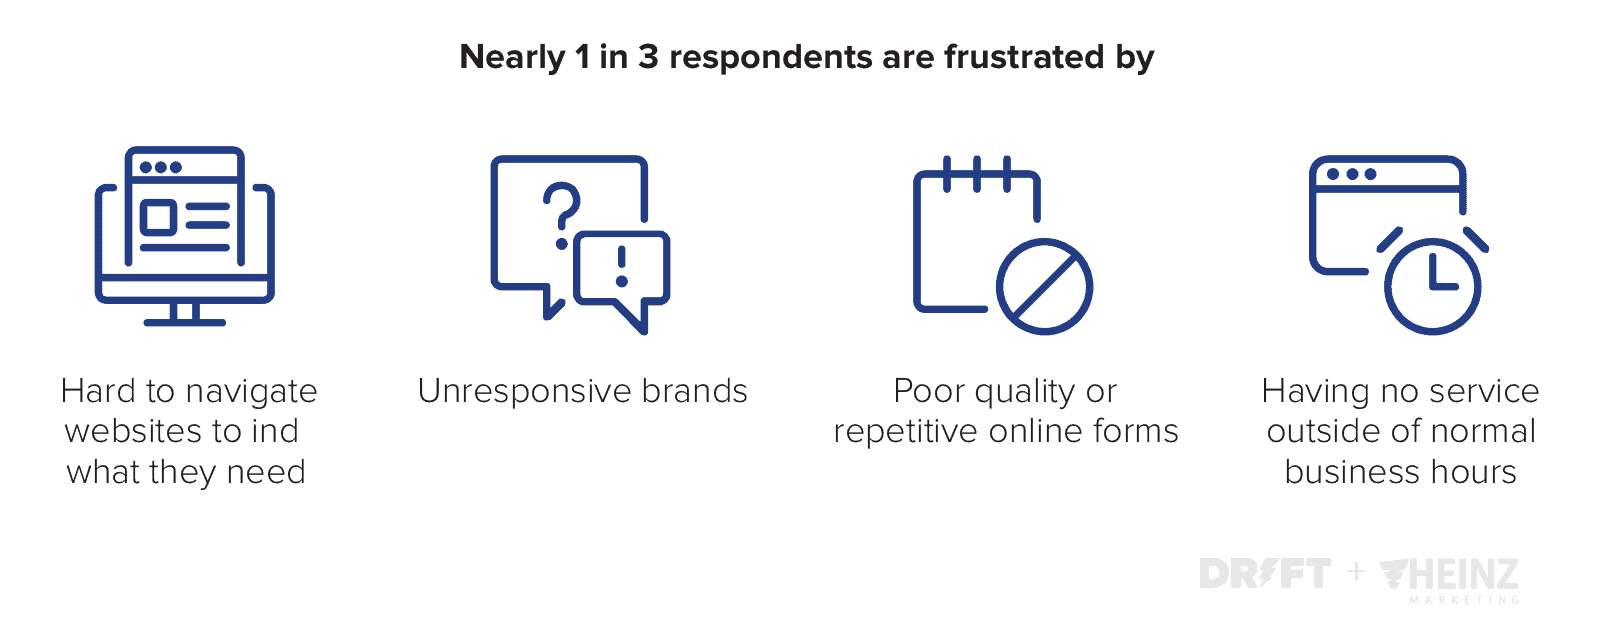 2020 State of Conversational Marketing_Frustrations